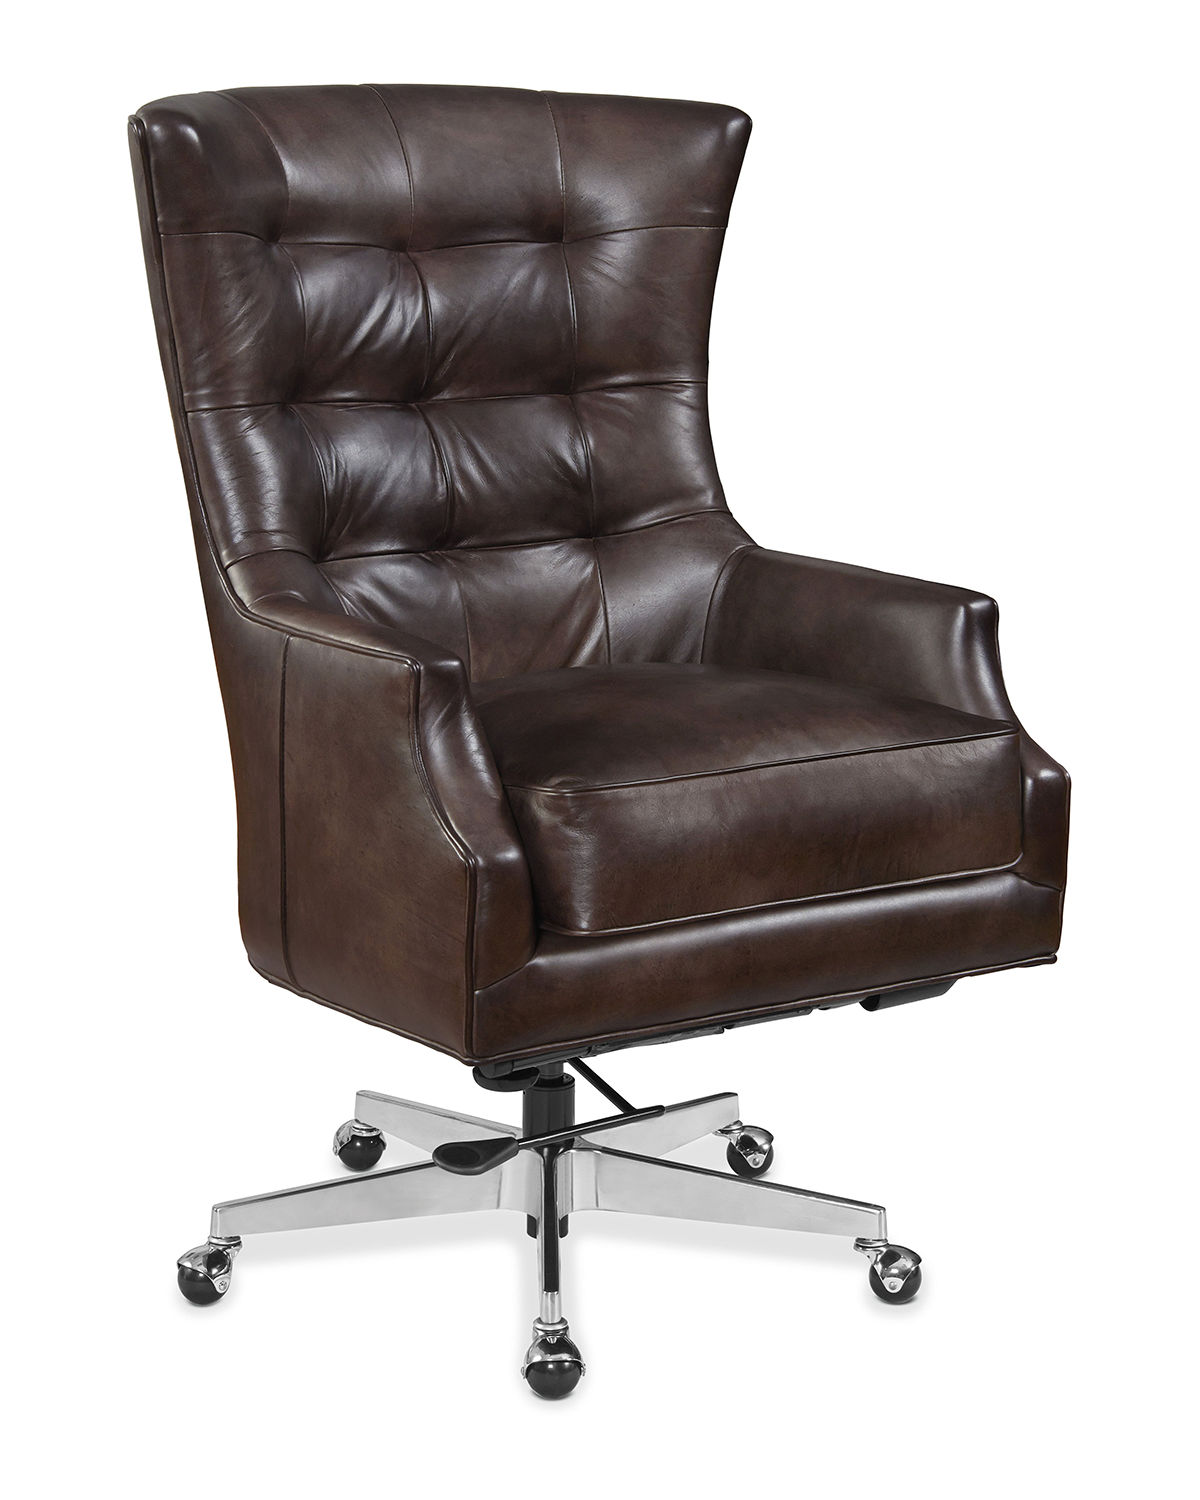 Hooker Furniture Rafael Leather Executive Office Chair